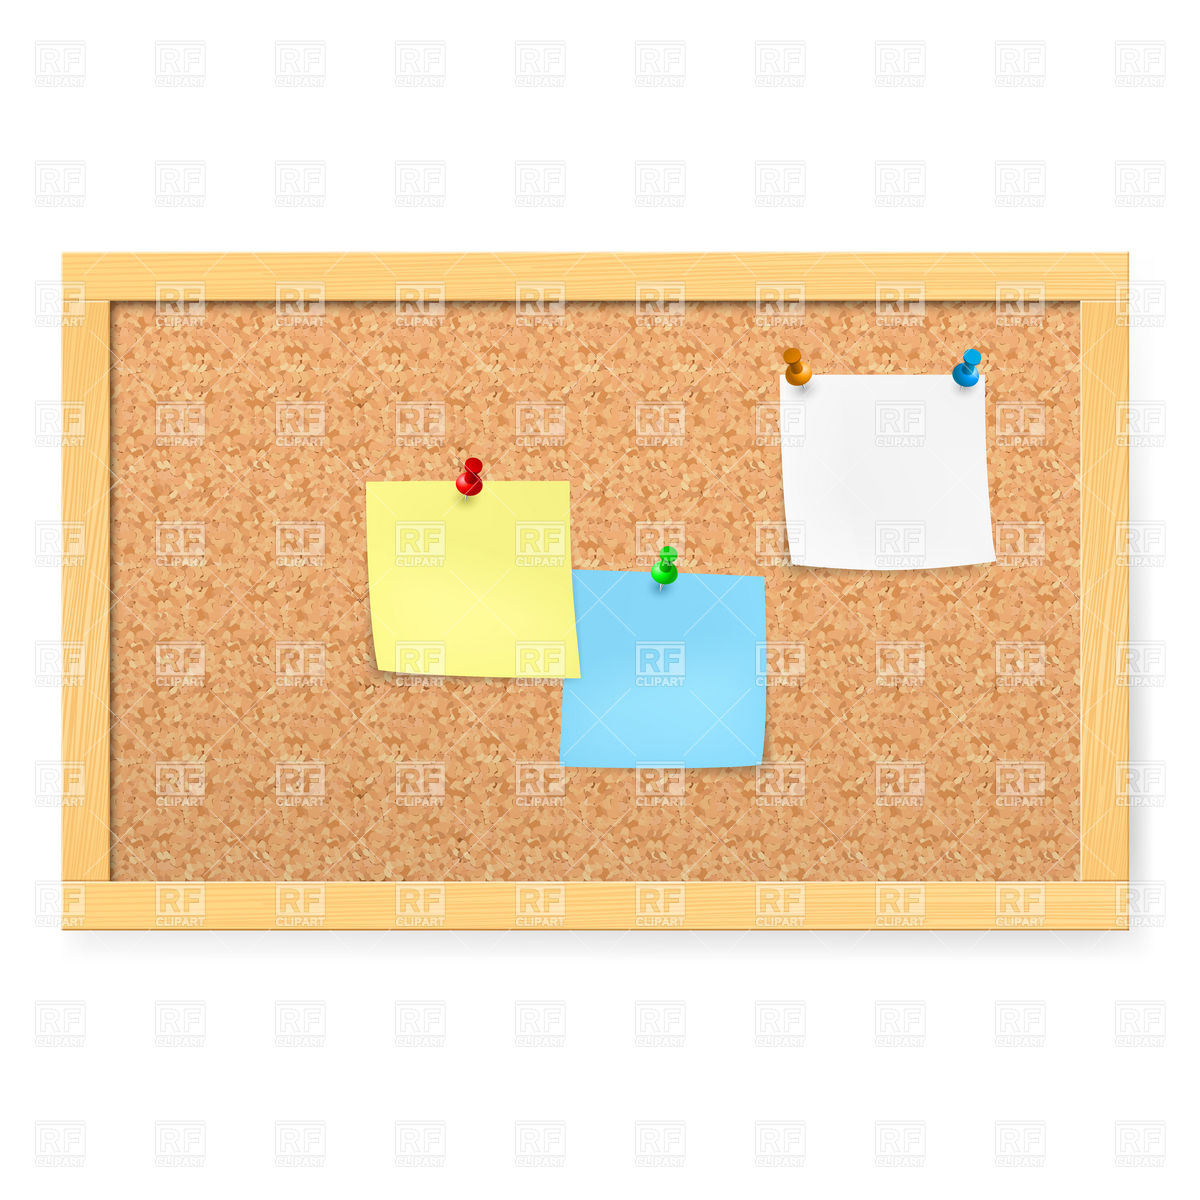 Cork board texture background Vector Image #9360.